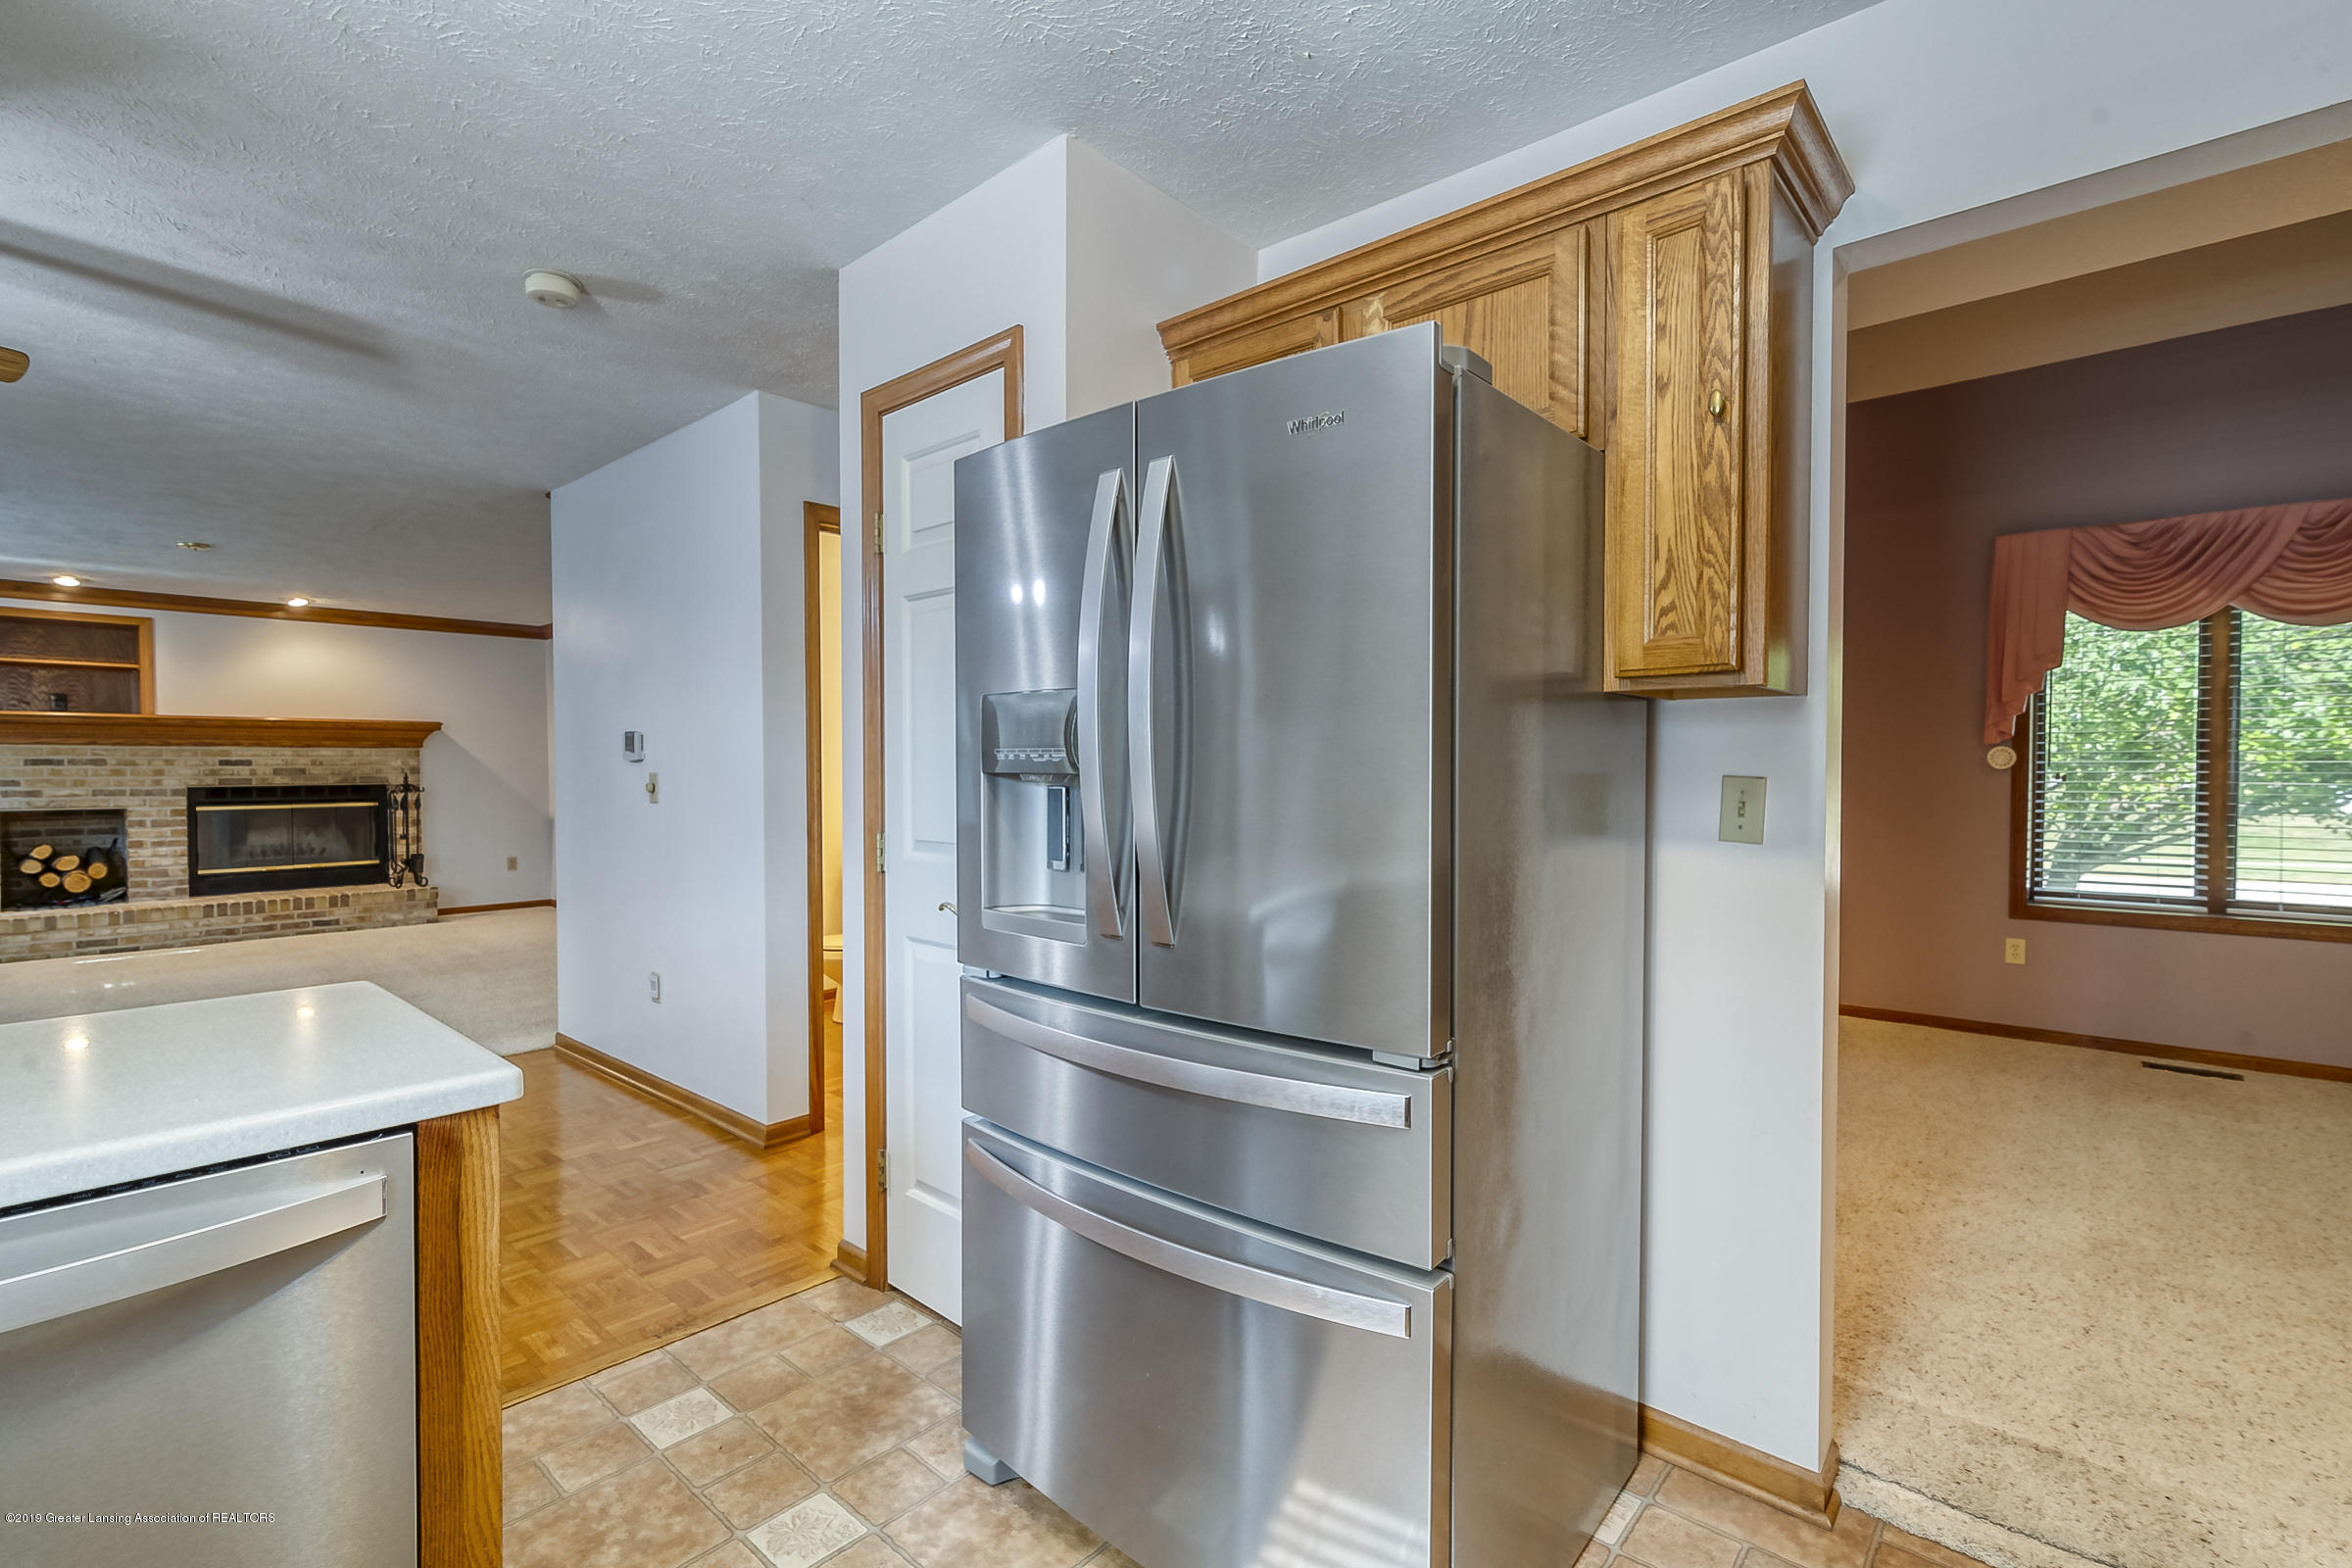 2343 Chisholm Ct - KITCHEN - 11